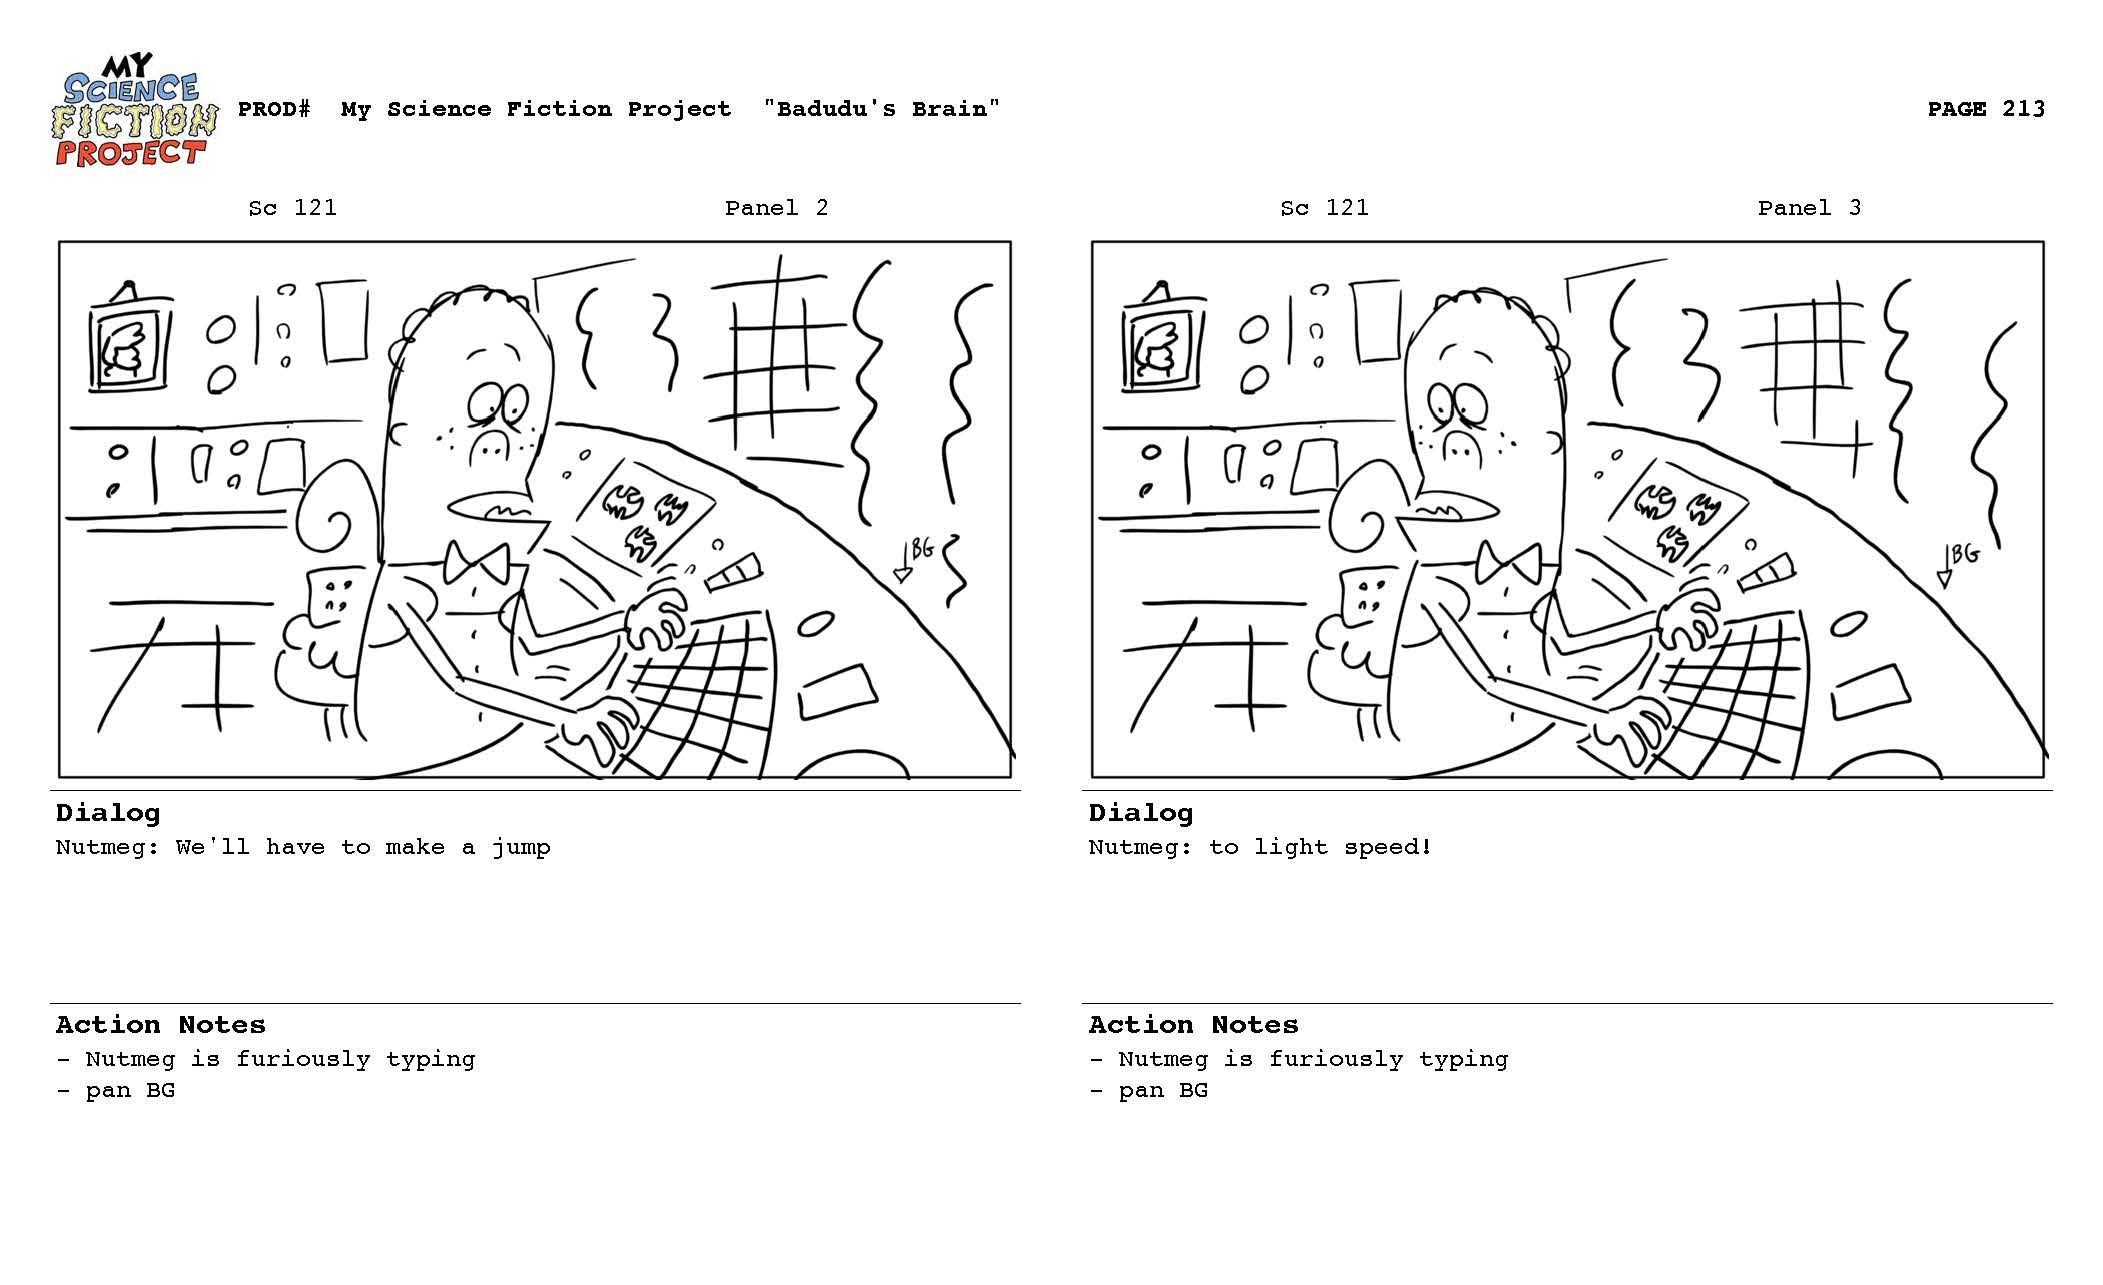 My_Science_Fiction_Project_SB_083112_reduced_Page_213.jpg